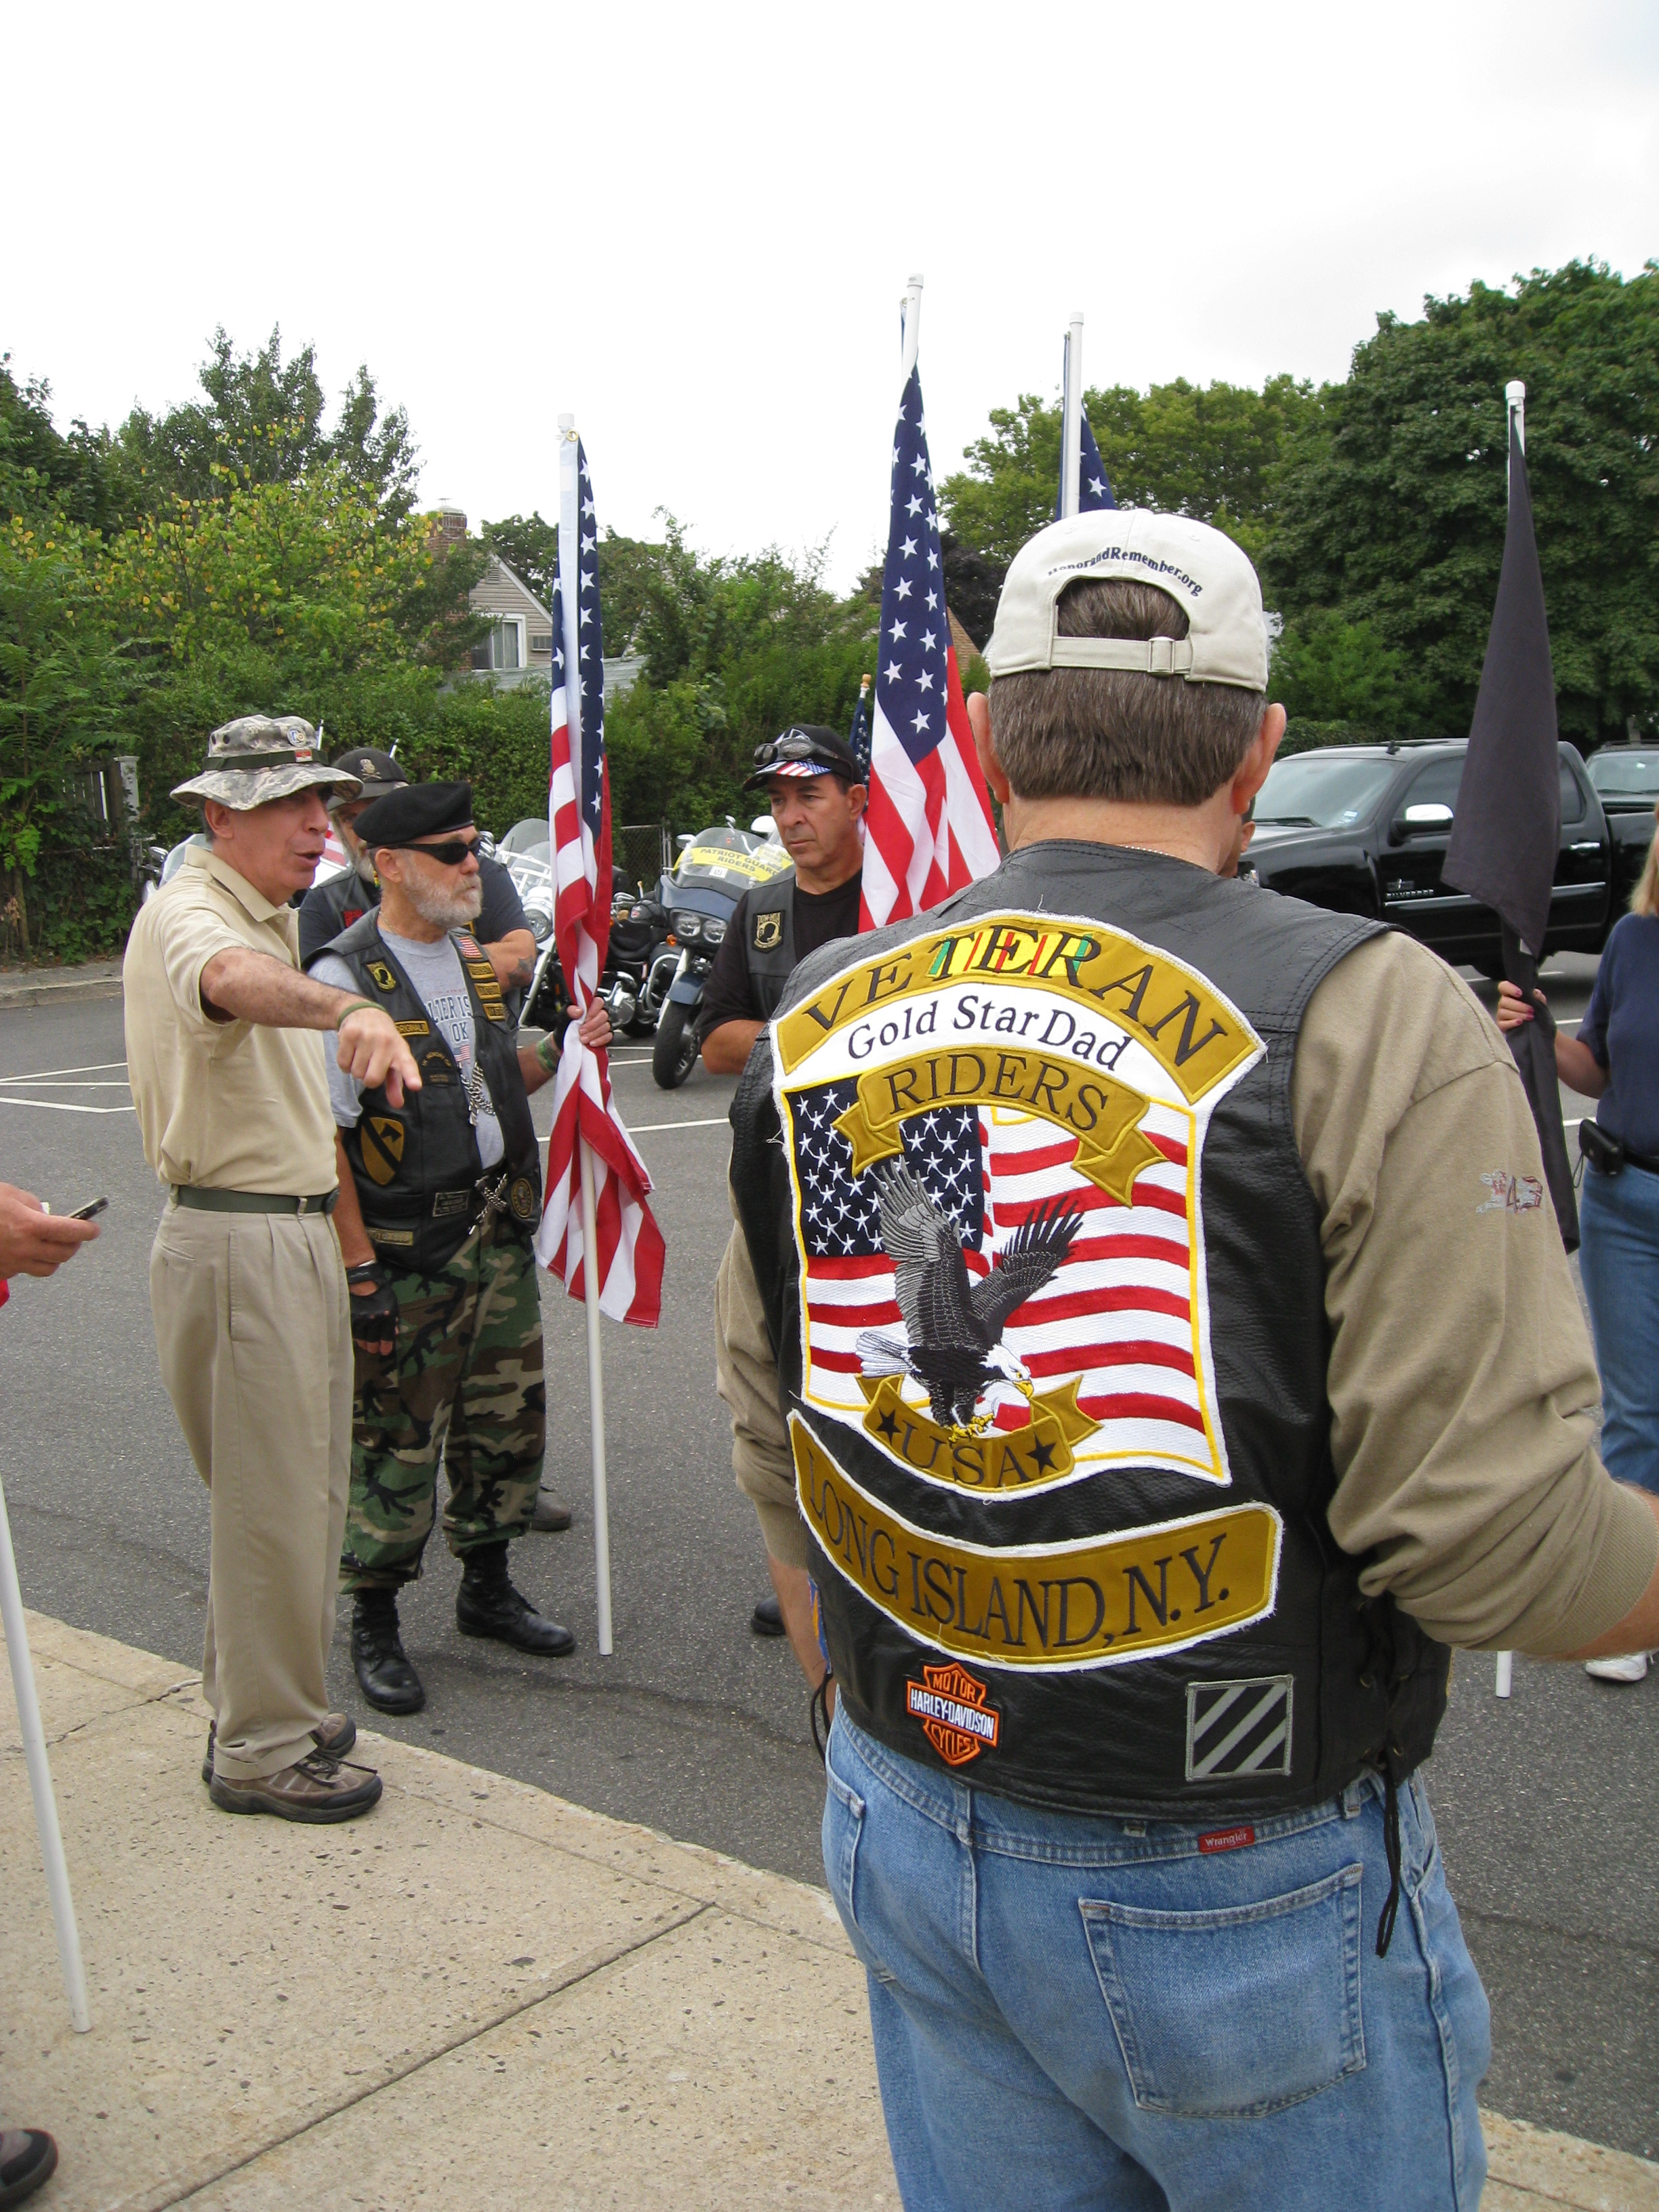 patriot guard riders gathering